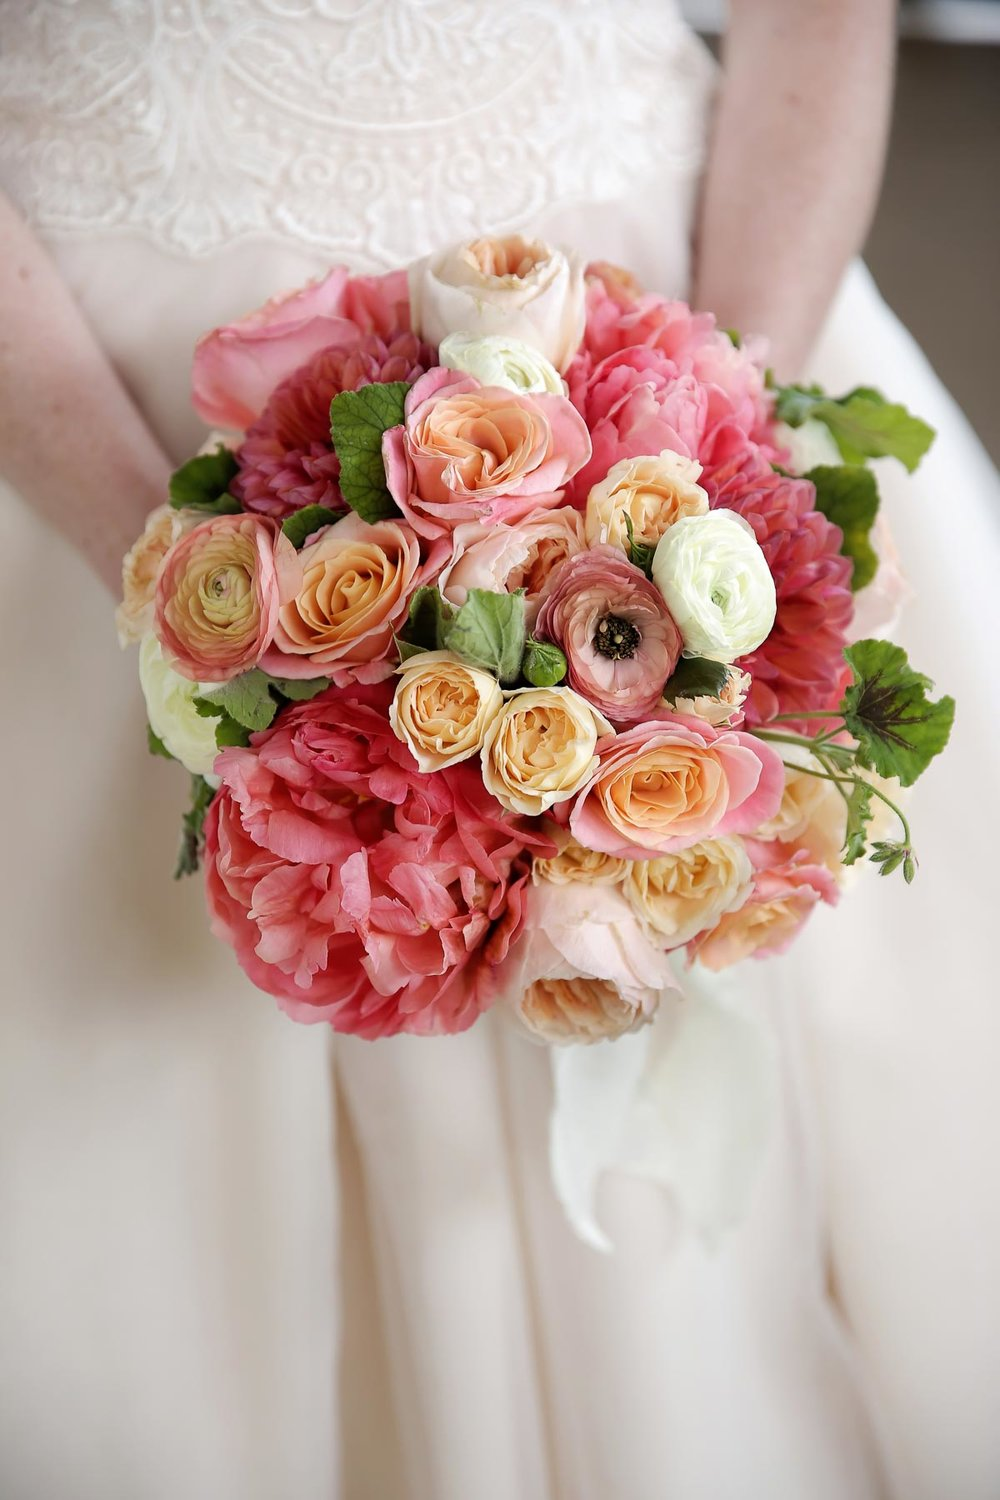 colorful-wedding-flowers-bridal-style-elegant-weddings-utah-weddings-park-city-weddings-pepper_nix_photography-76.jpg